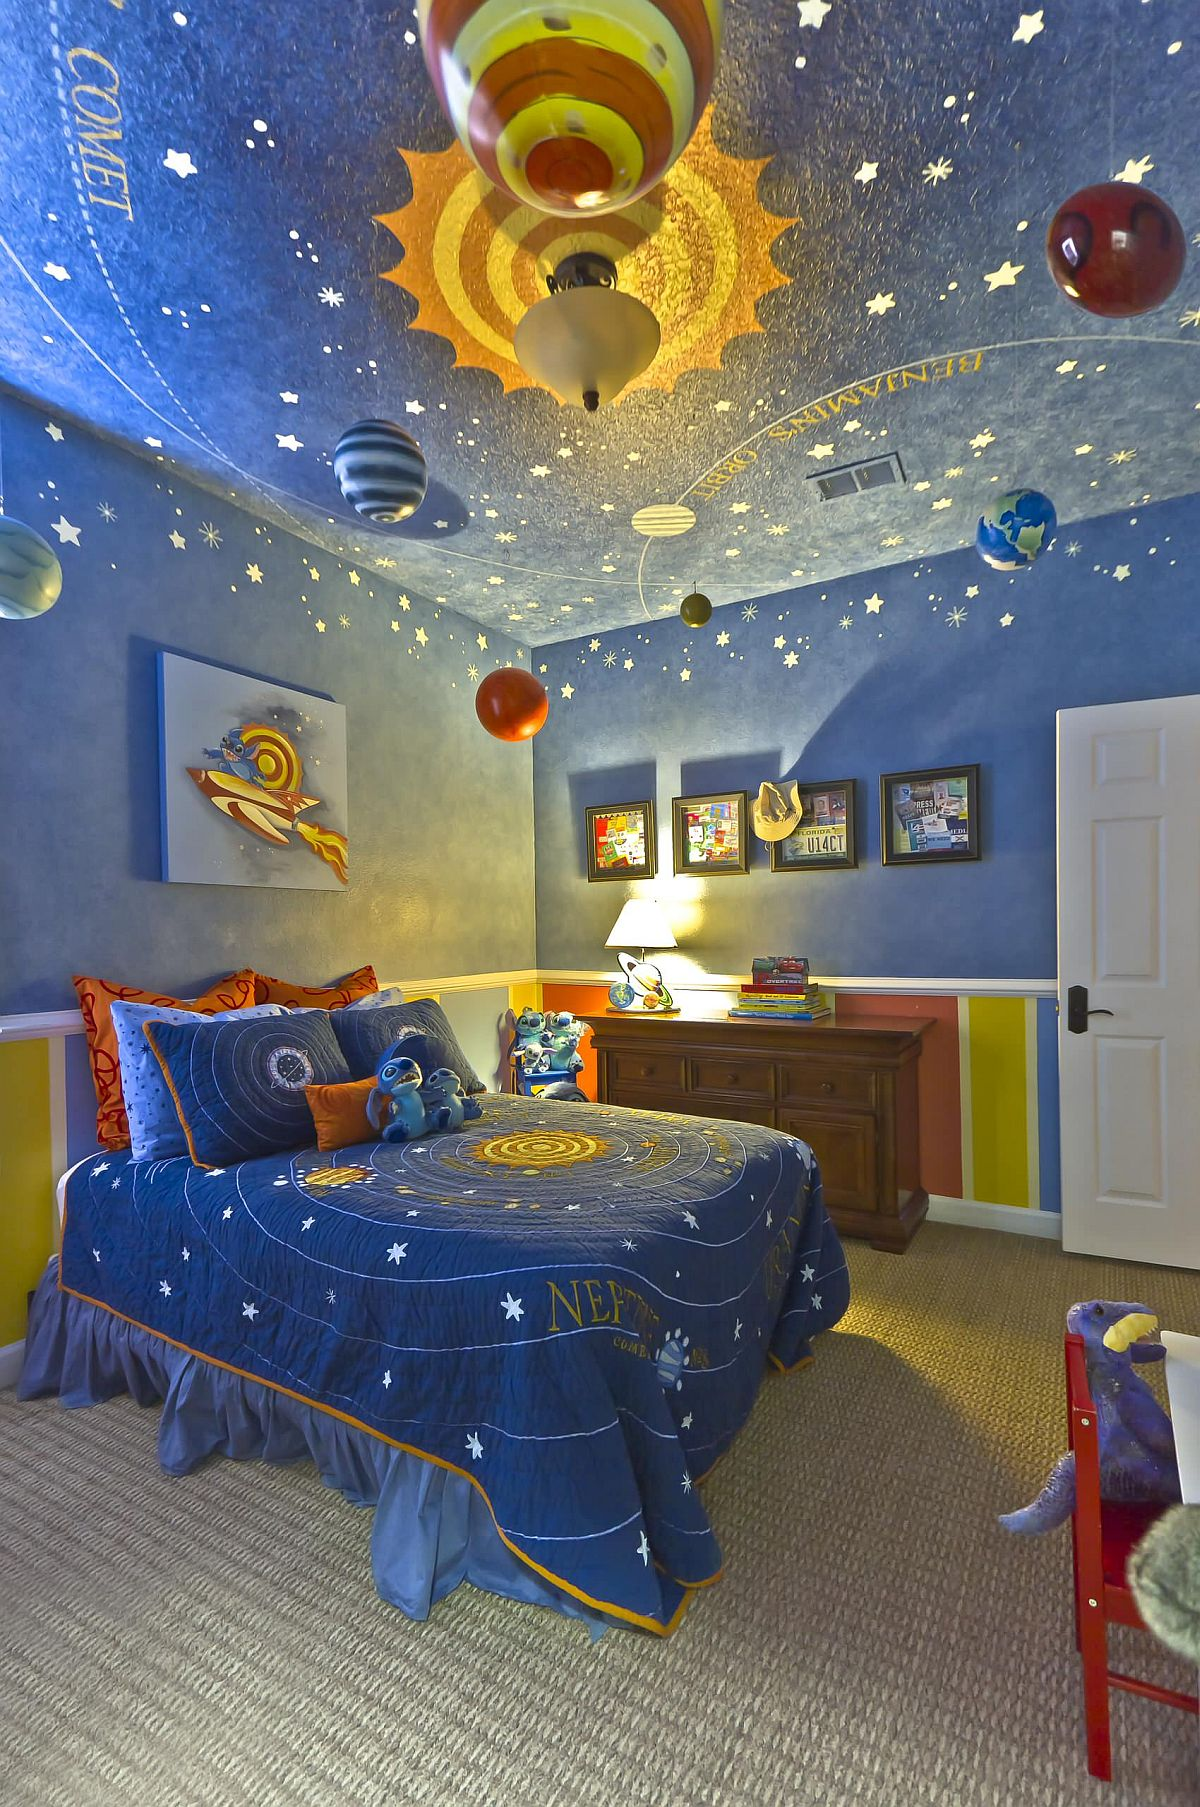 Wallpaper-on-ceilings 10 Cute Ways to Use Removable Wallpaper for Your Kid's Bedroom